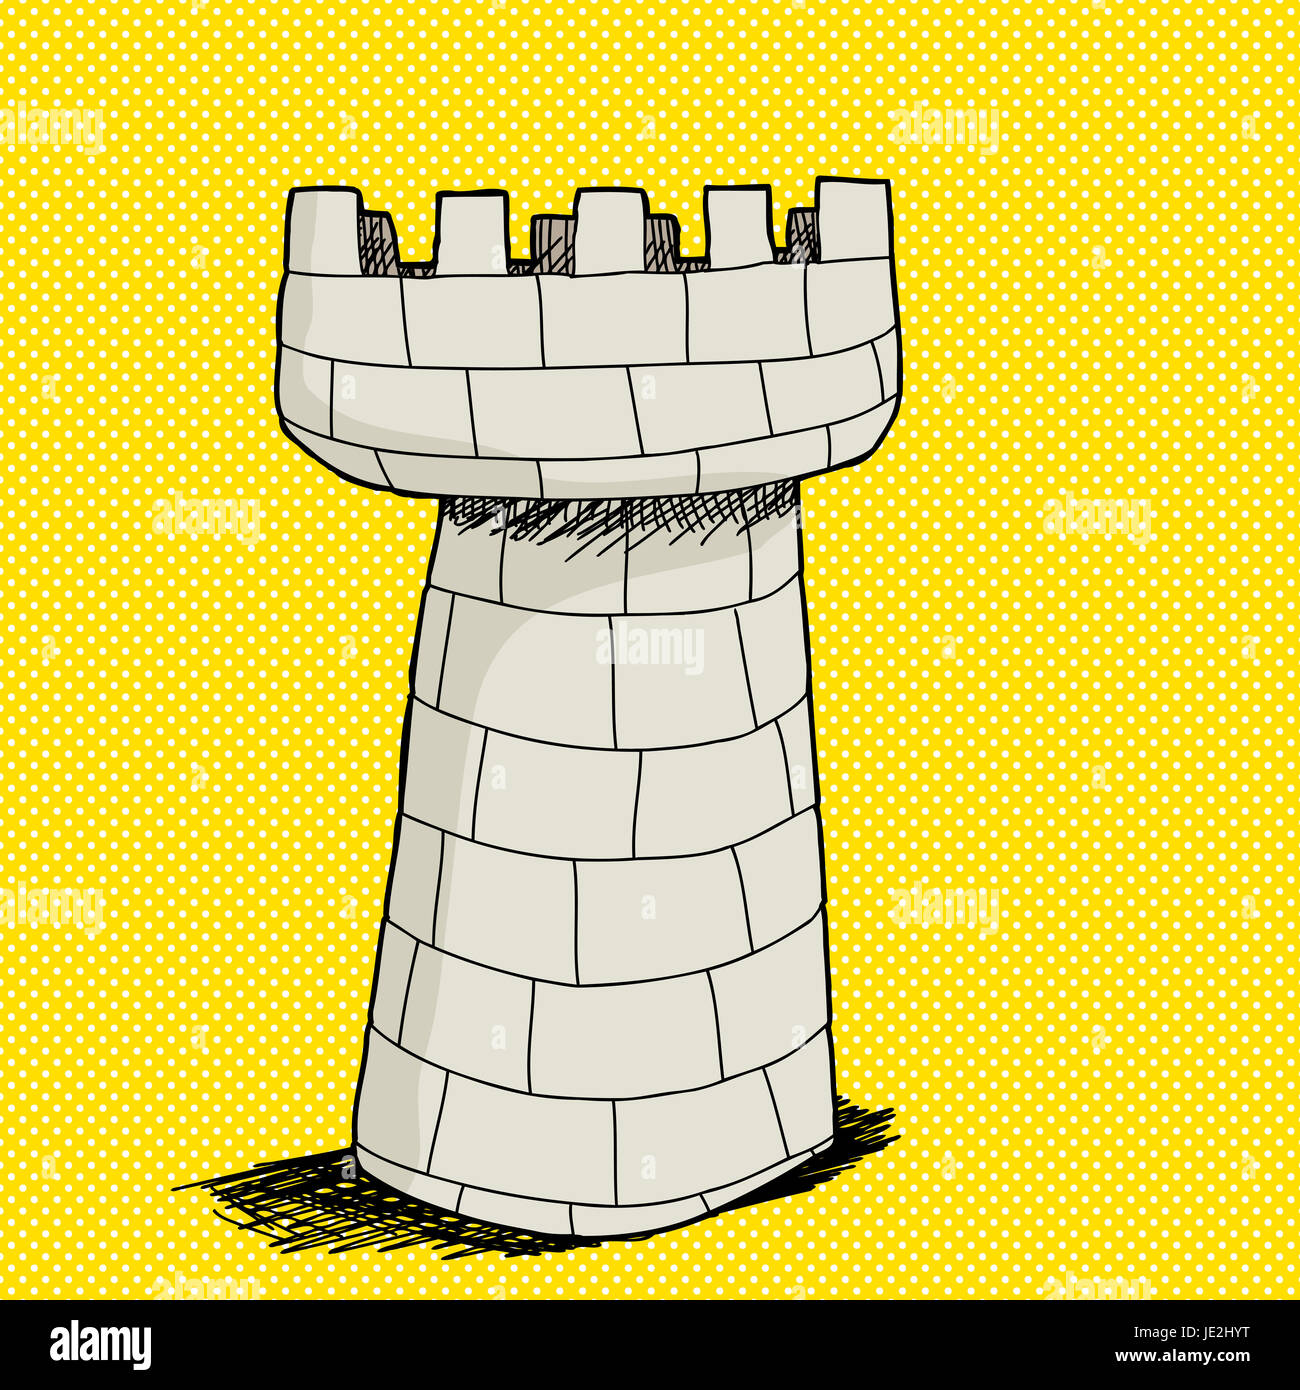 hand drawn cartoon castle tower stockfotos hand drawn cartoon castle tower bilder alamy. Black Bedroom Furniture Sets. Home Design Ideas